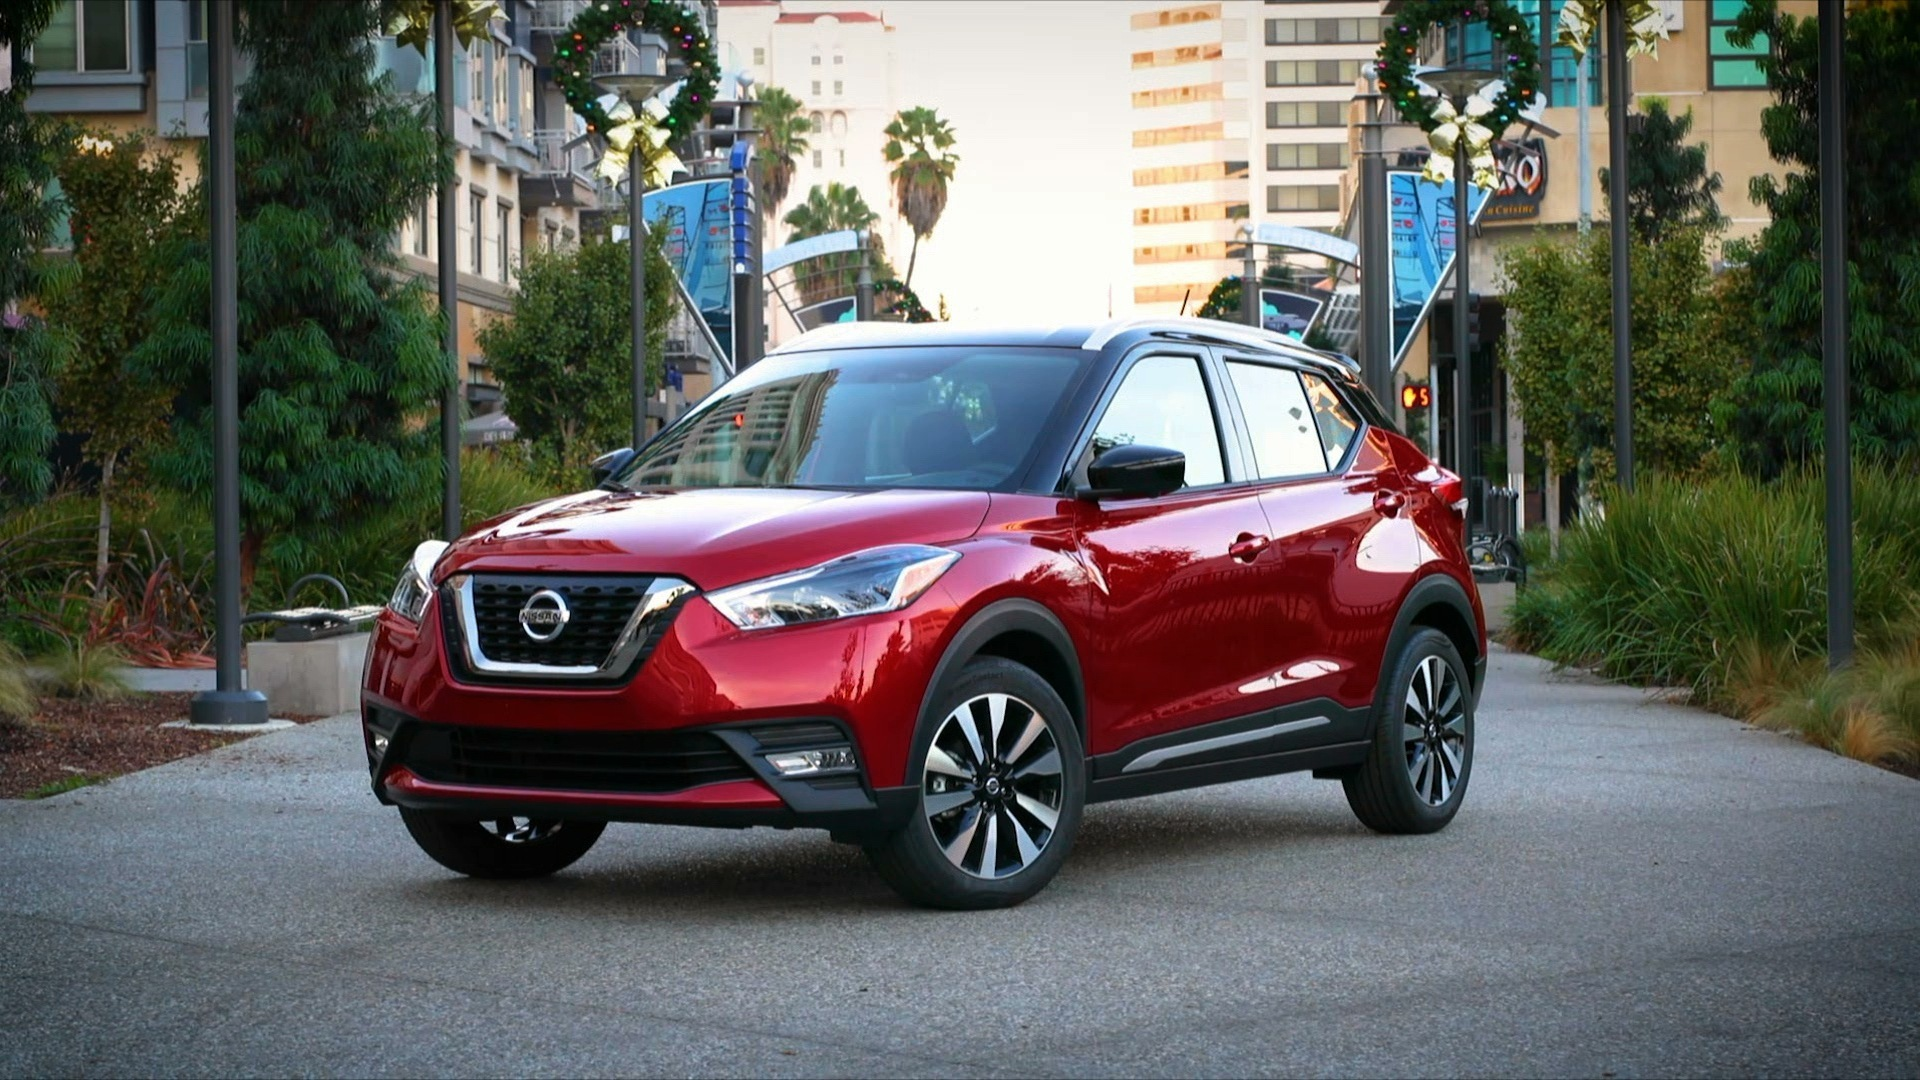 Driving Innovation – 2018 Nissan Kicks